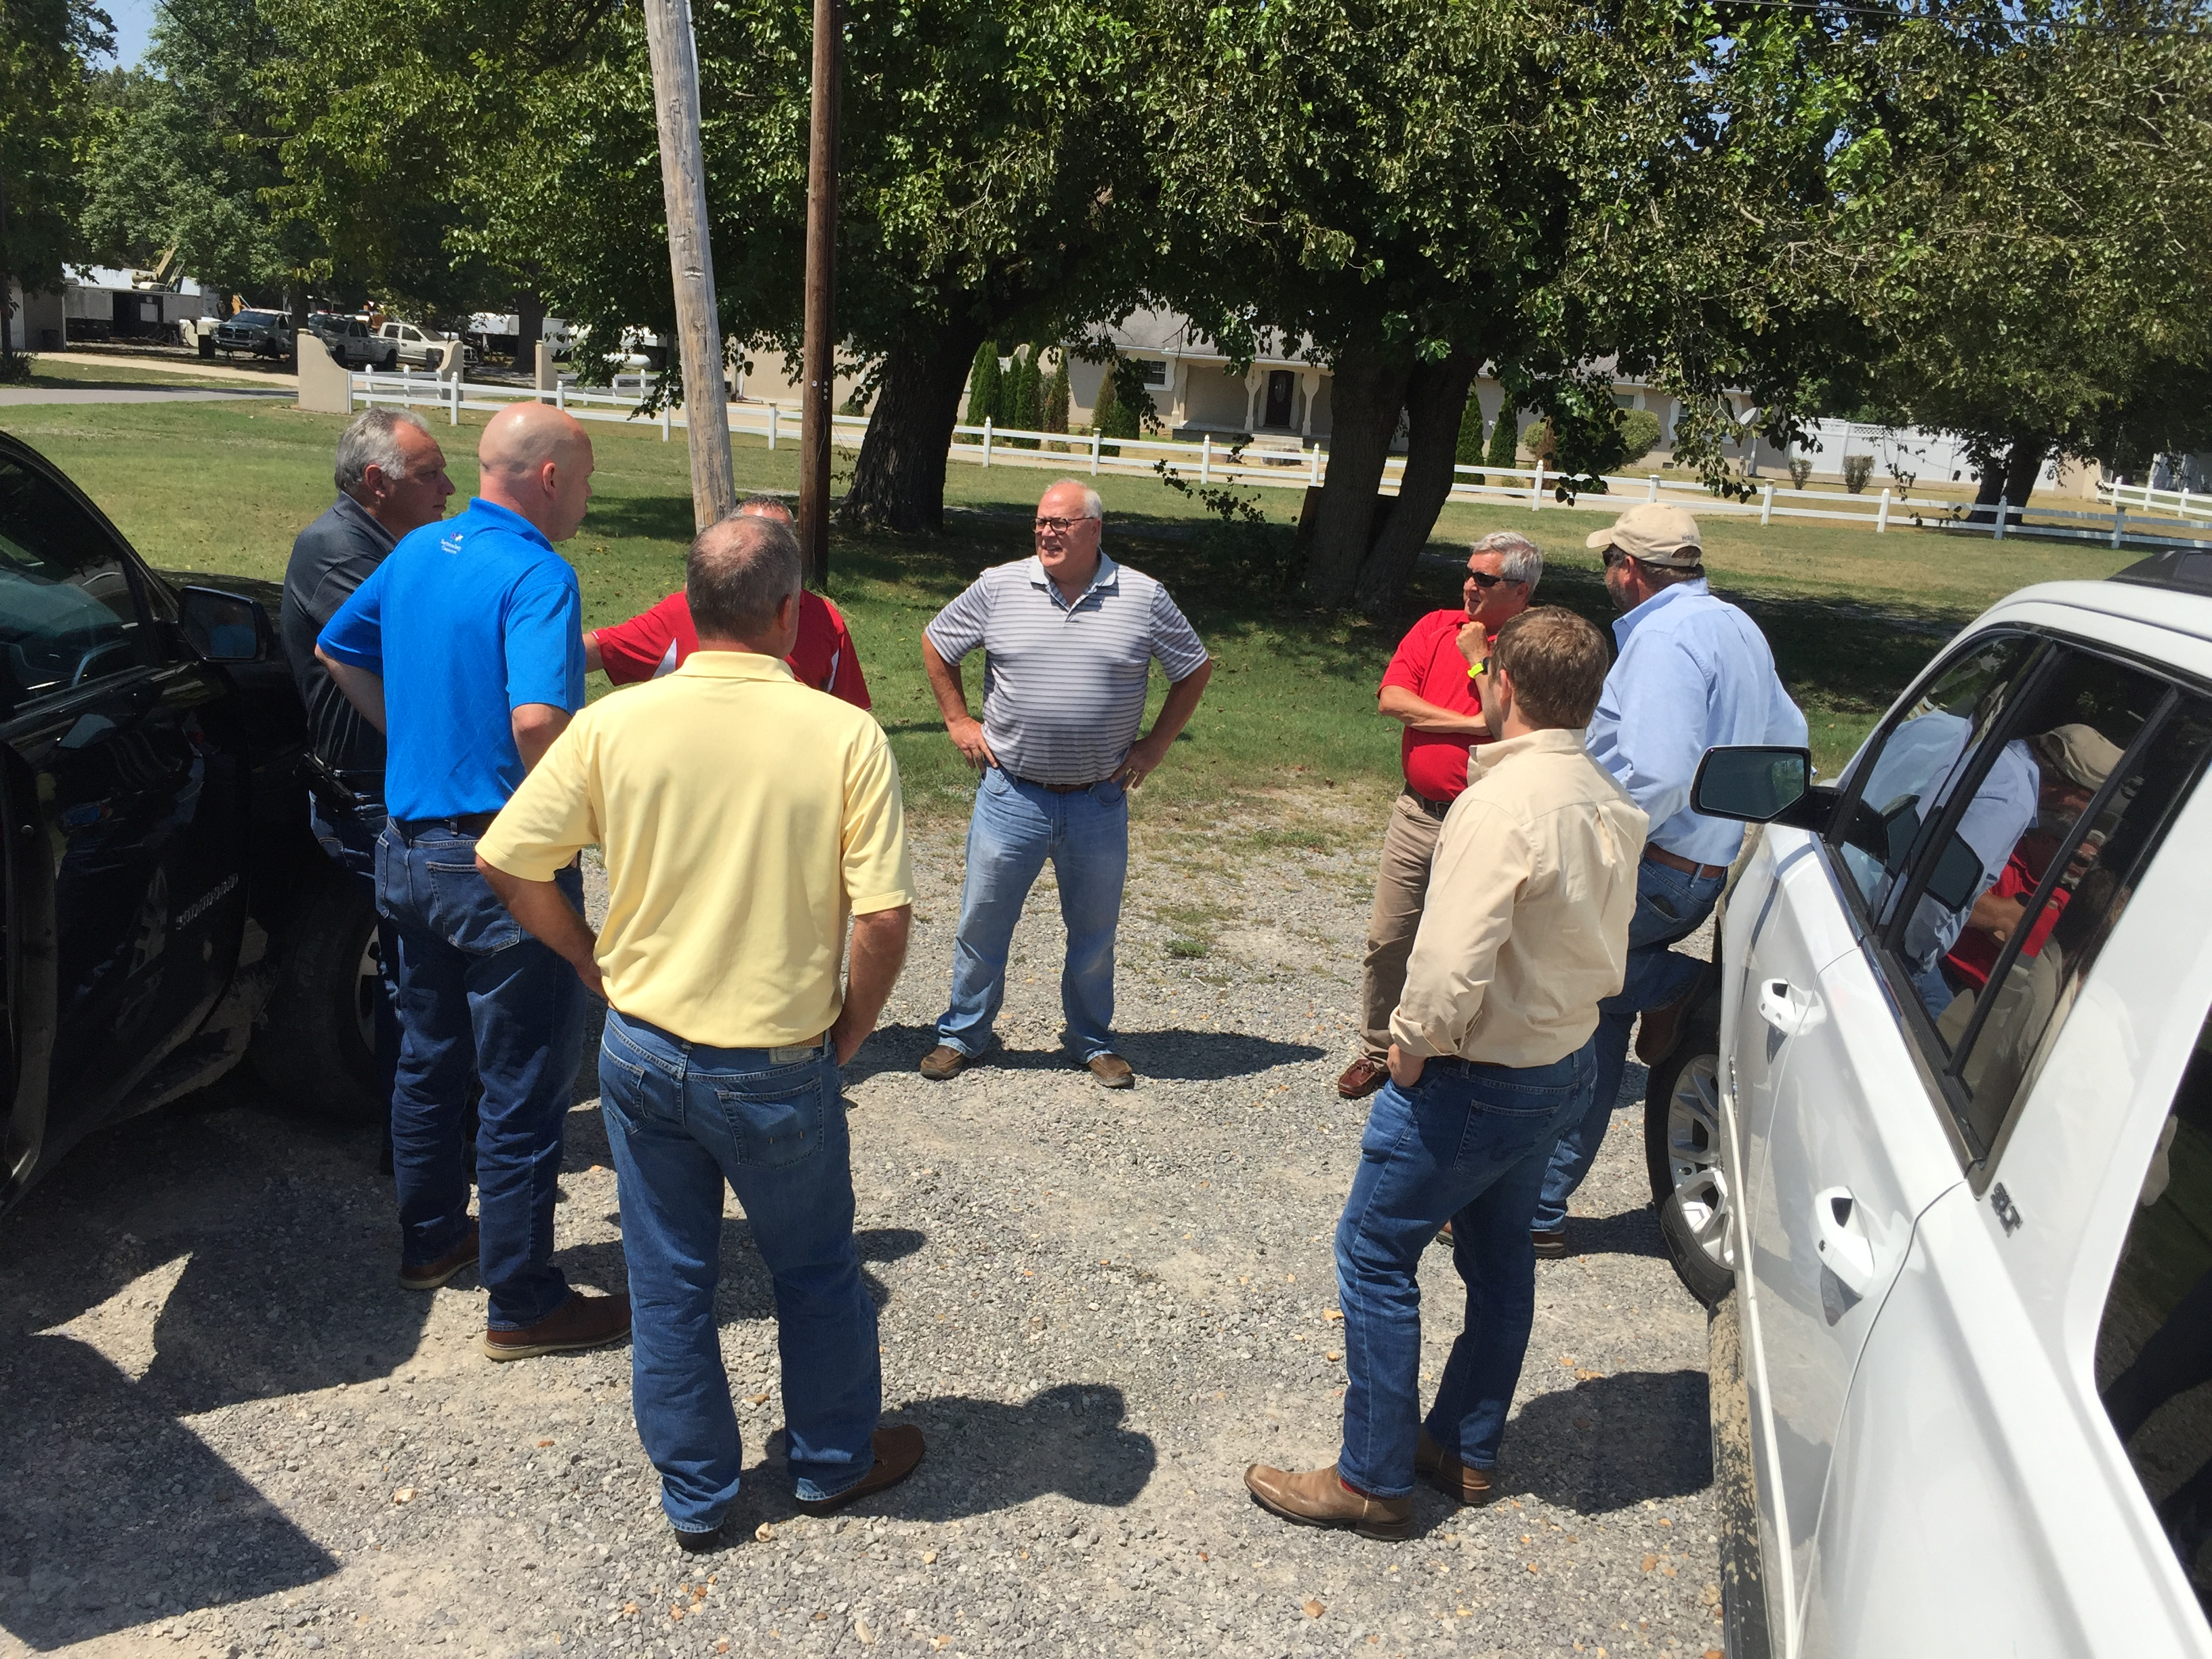 Gosemo Fiber Kentucky Trailer Wiring Diagram You Encourage Neighbors And Others To Sign Up